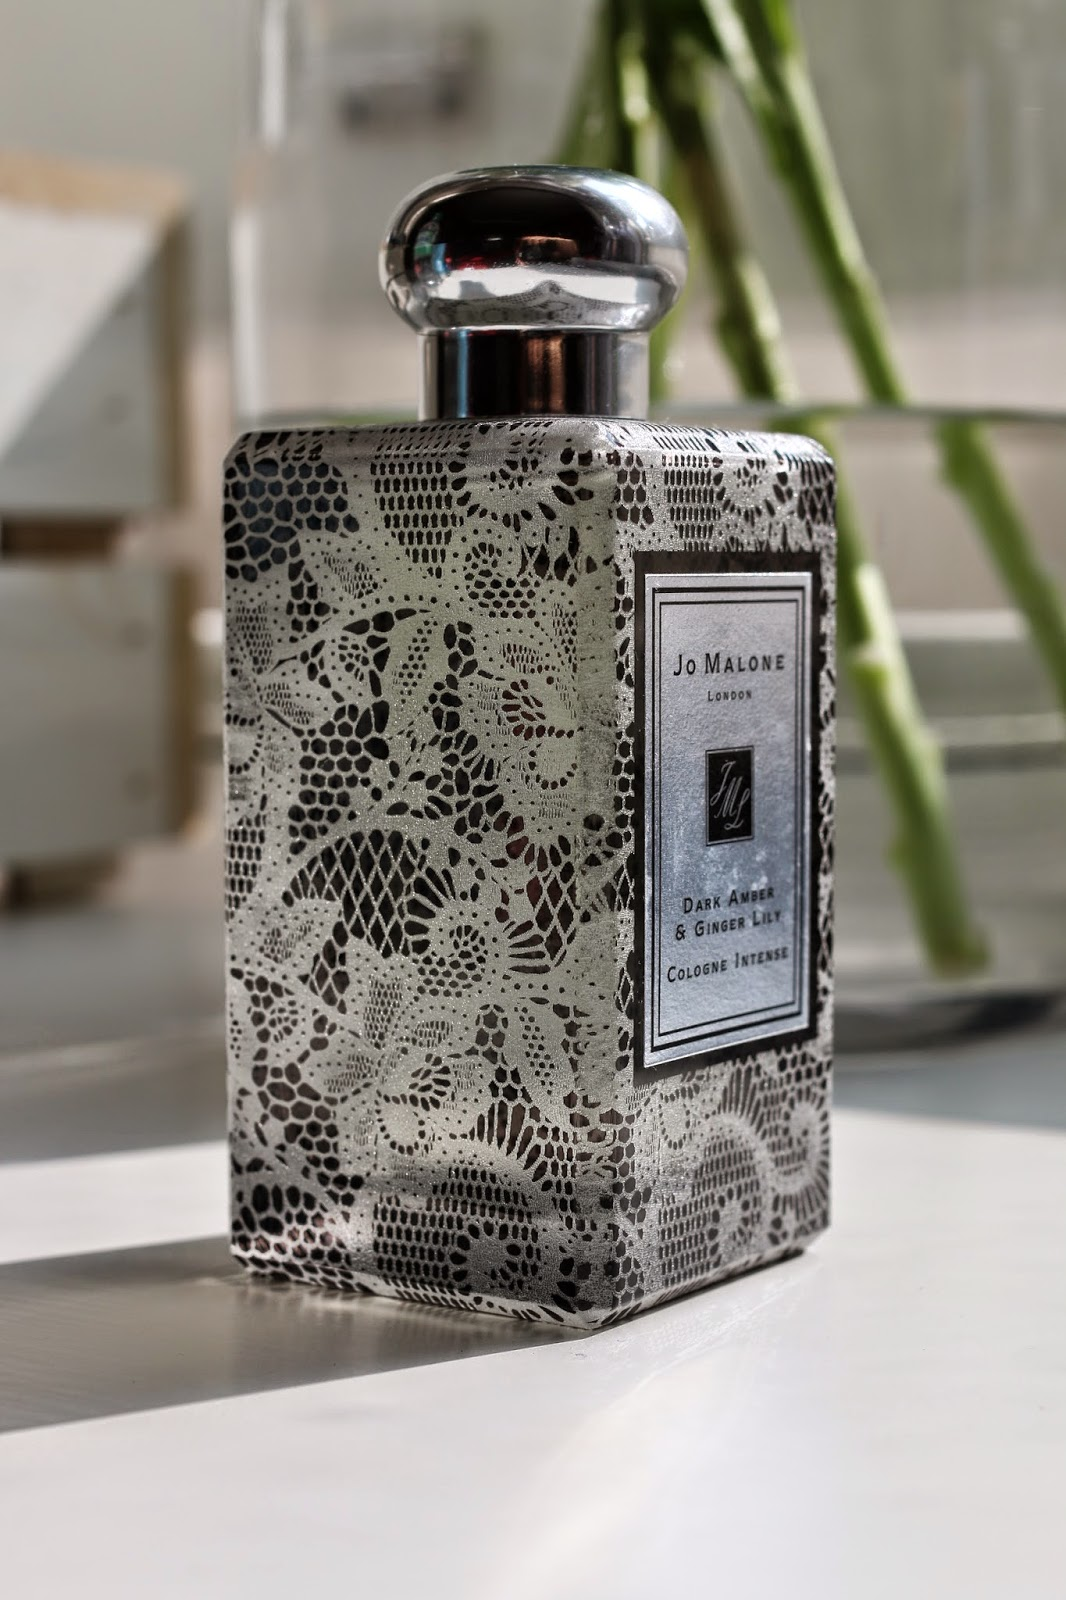 jo malone london lace bottle collection caroline hirons. Black Bedroom Furniture Sets. Home Design Ideas